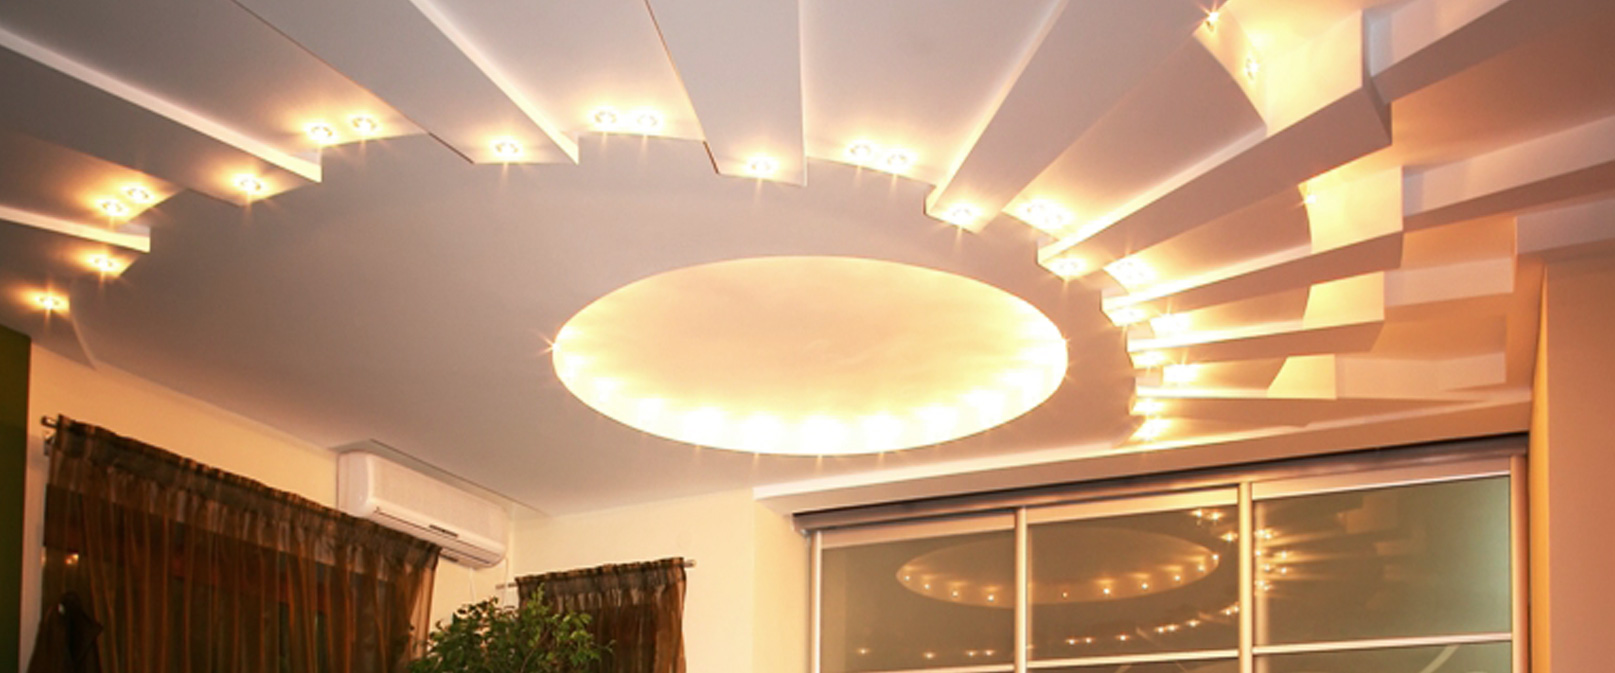 Gyproc S Blog False Ceiling Gypsum Board Drywall